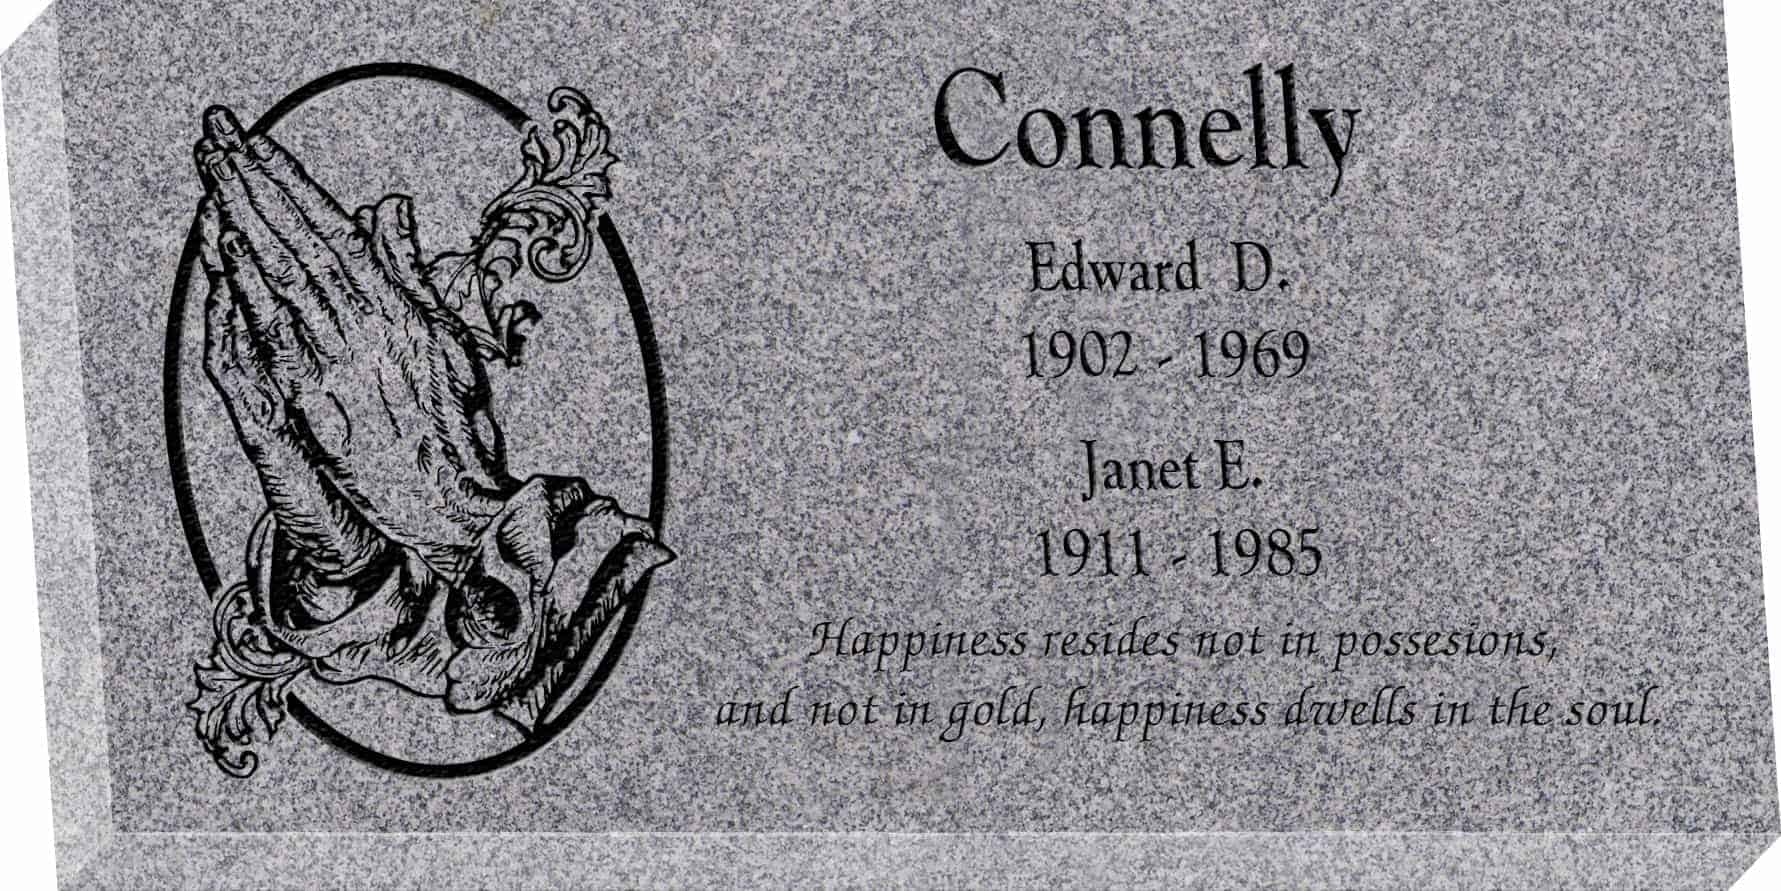 24inch_x_12inch_x_3inch_Flat_Granite_Headstone_in_Grey_with_design_AS-014